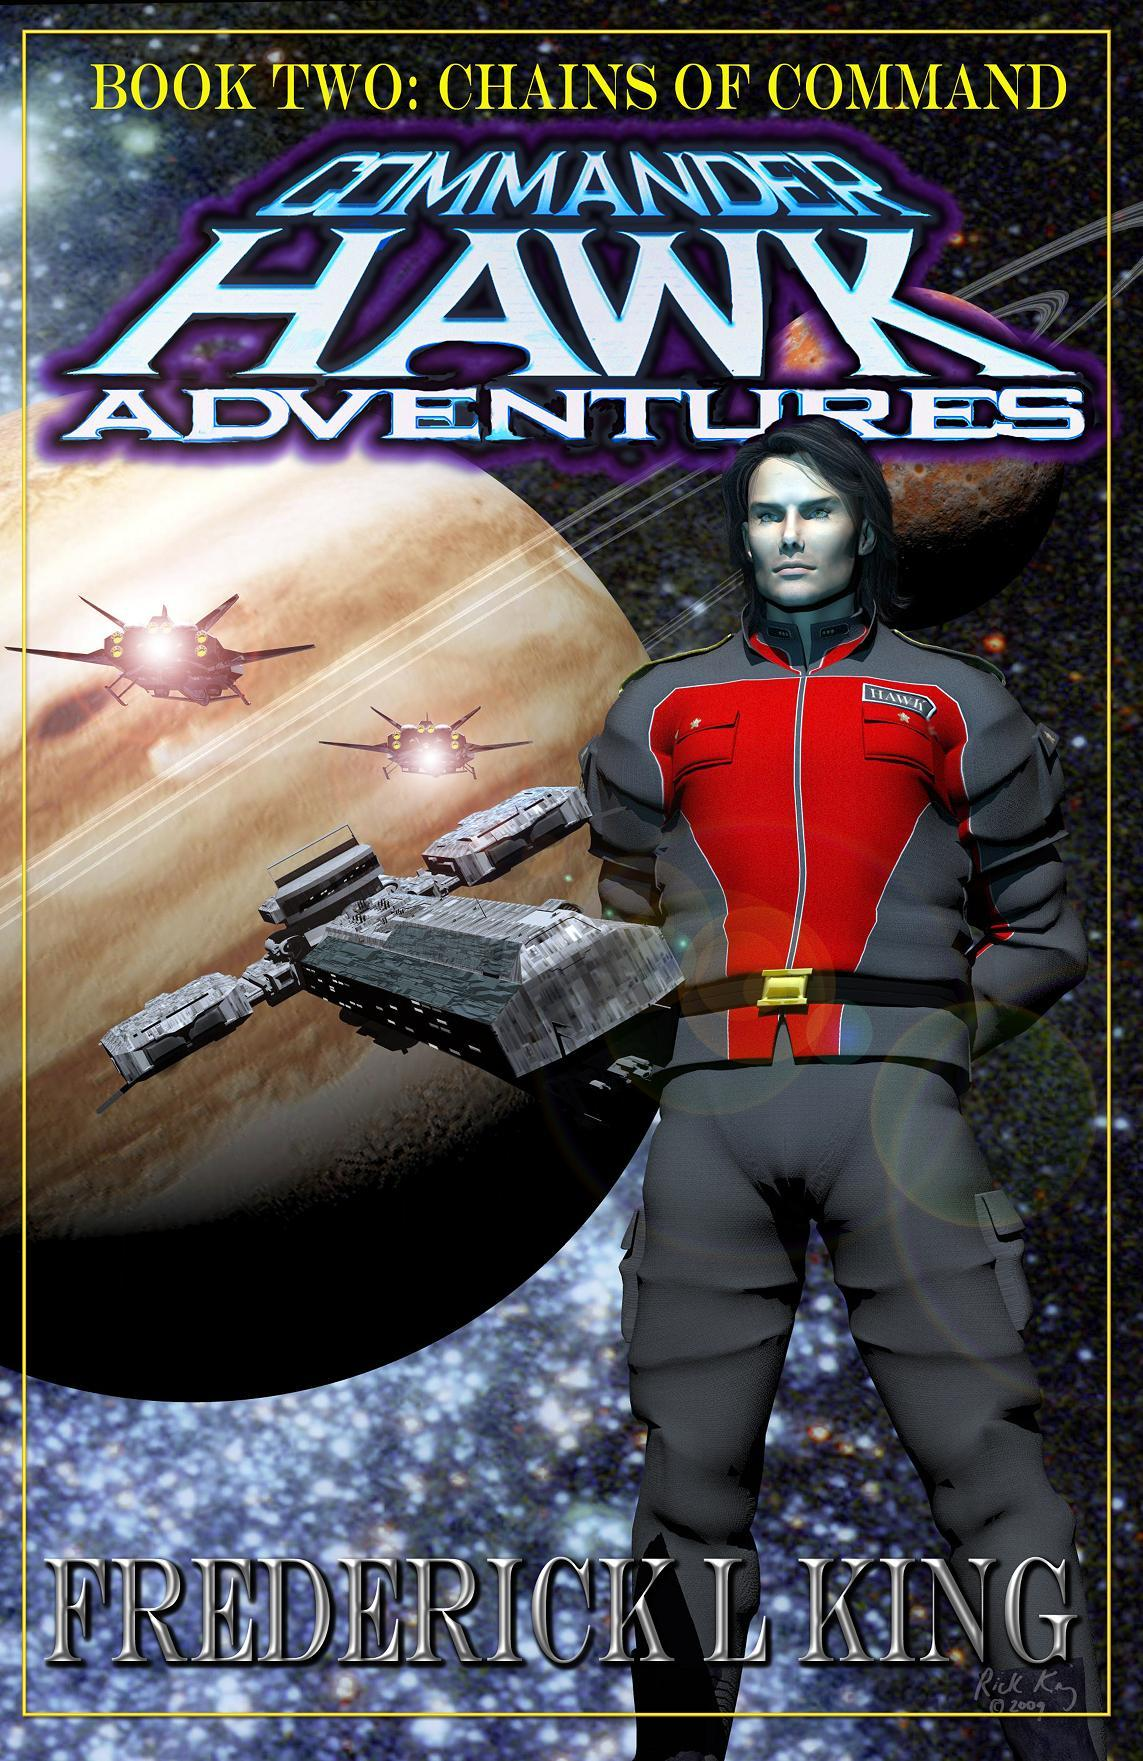 Commander Hawk book 2